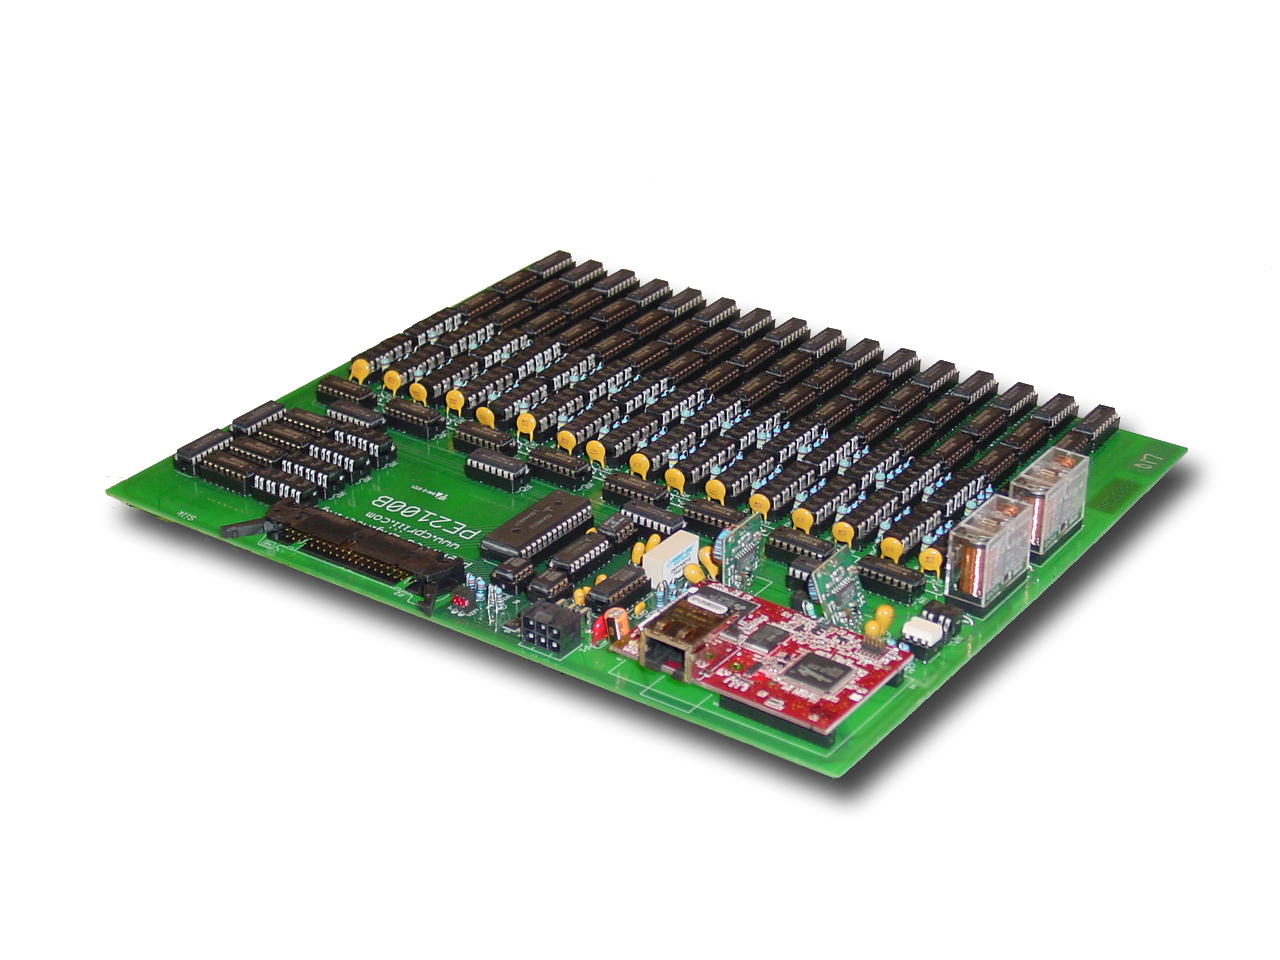 Preferred Engineering Computer Technology Circuit Board With Multiple Electronic Components Pe2100b Pe2102c